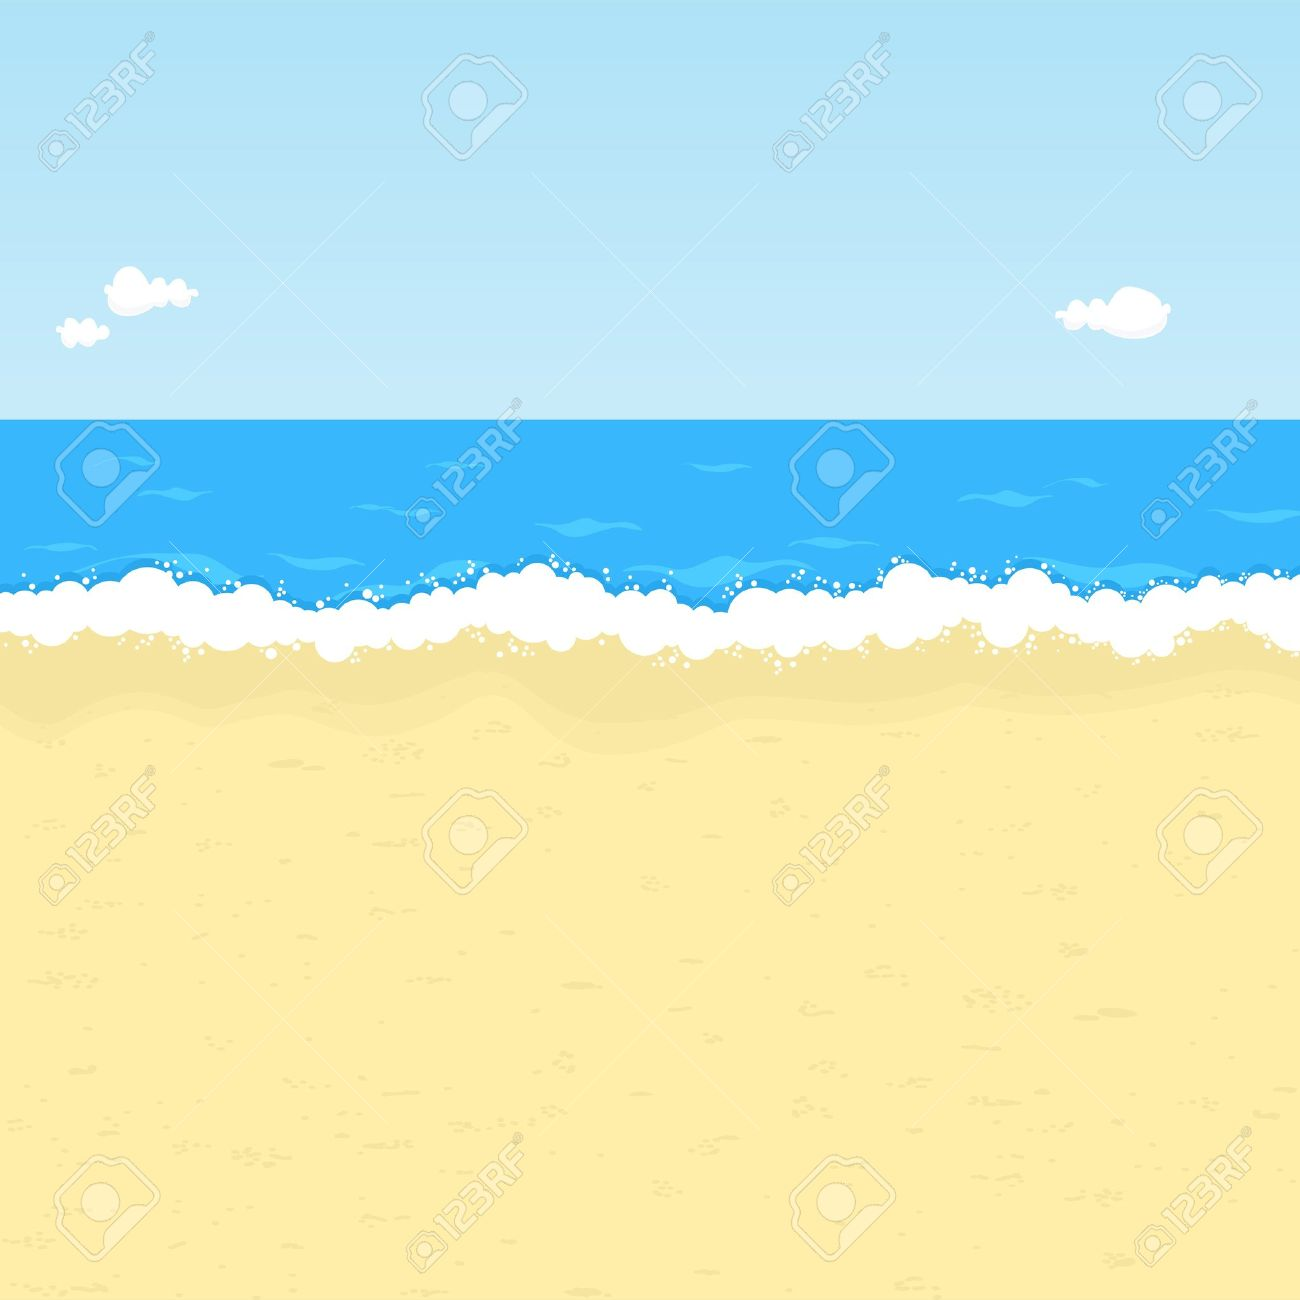 Shore clipart #7, Download drawings